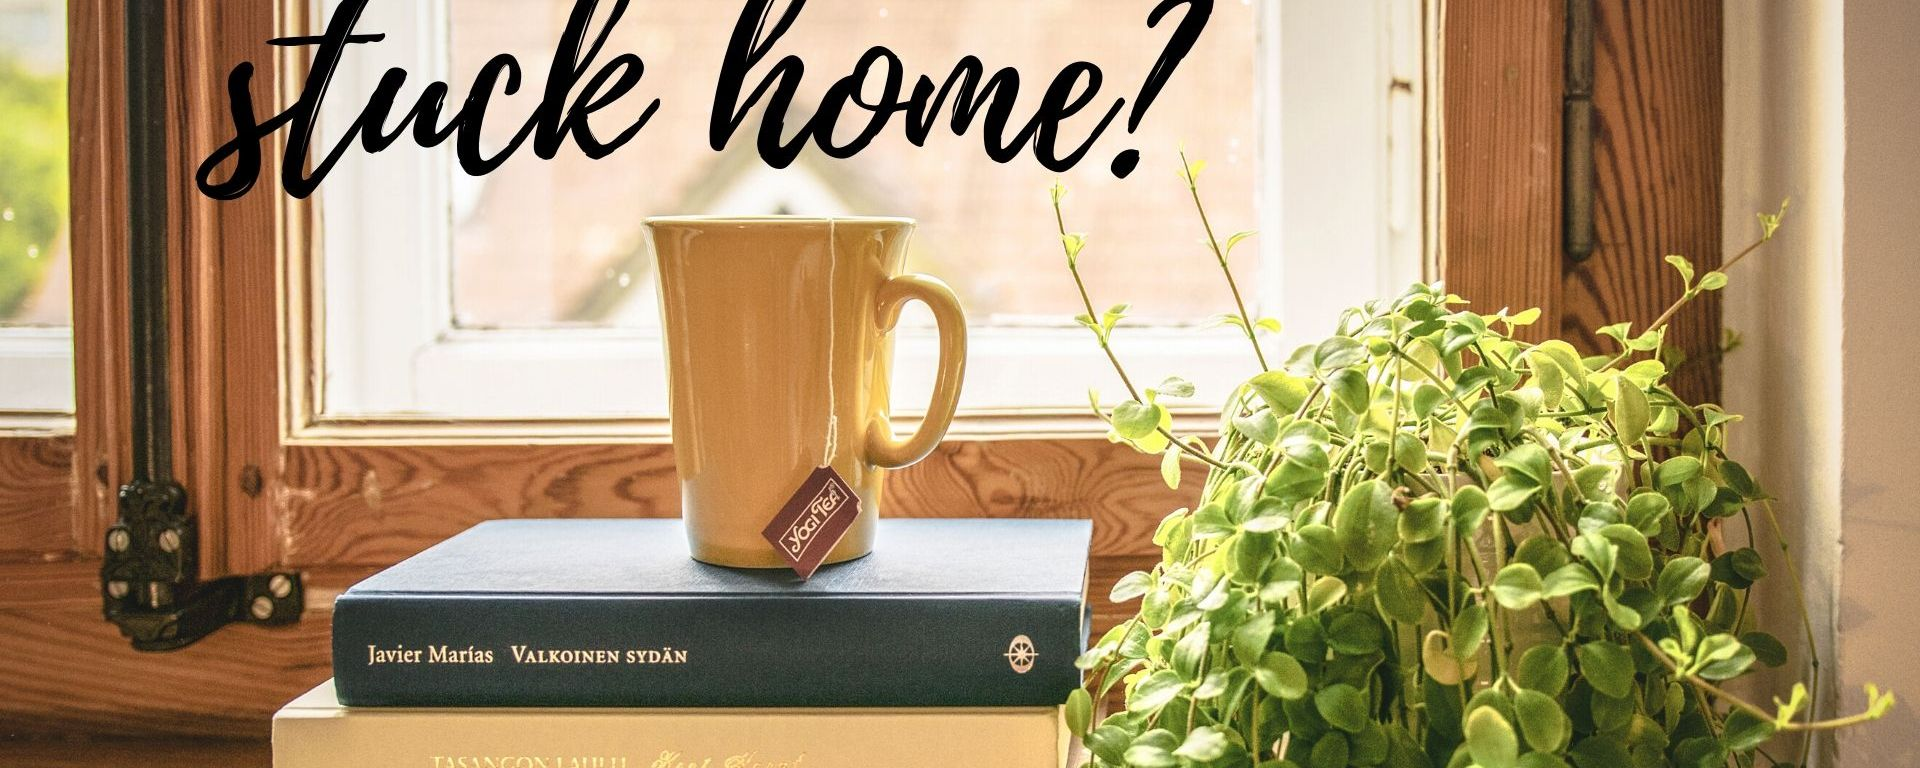 "Picture of books, tea, and the words ""stuck home?' across it"